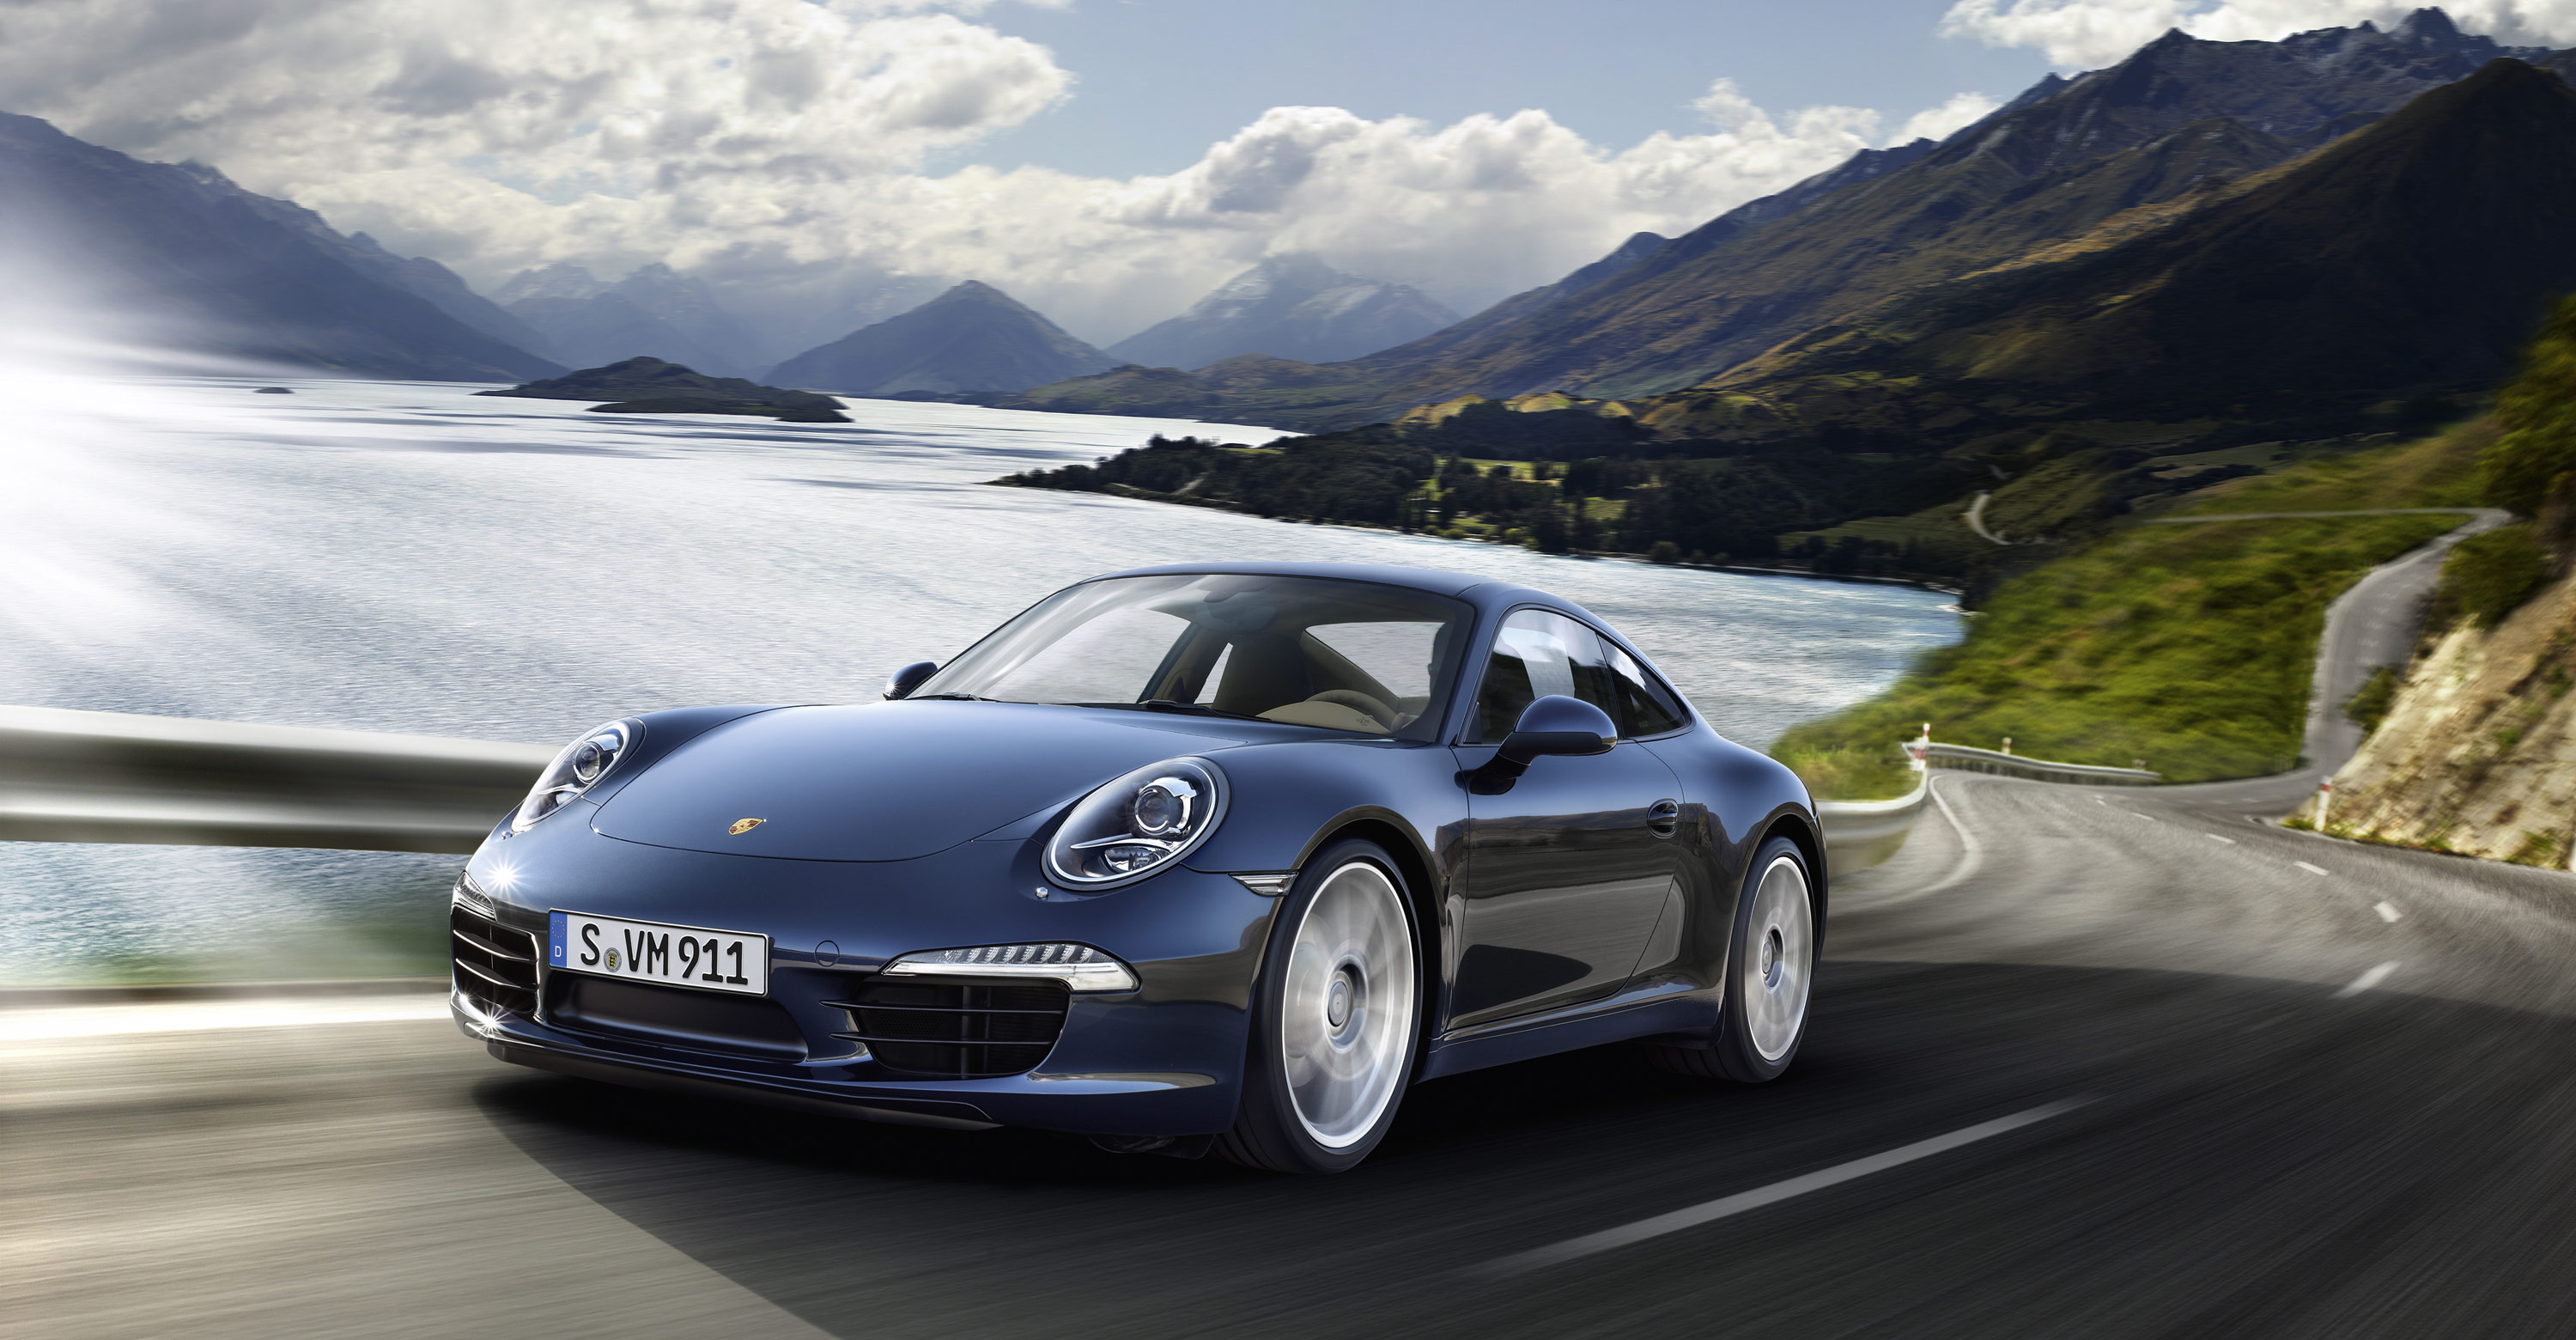 2012 blue porsche 911 carrera s wallpapers. Black Bedroom Furniture Sets. Home Design Ideas